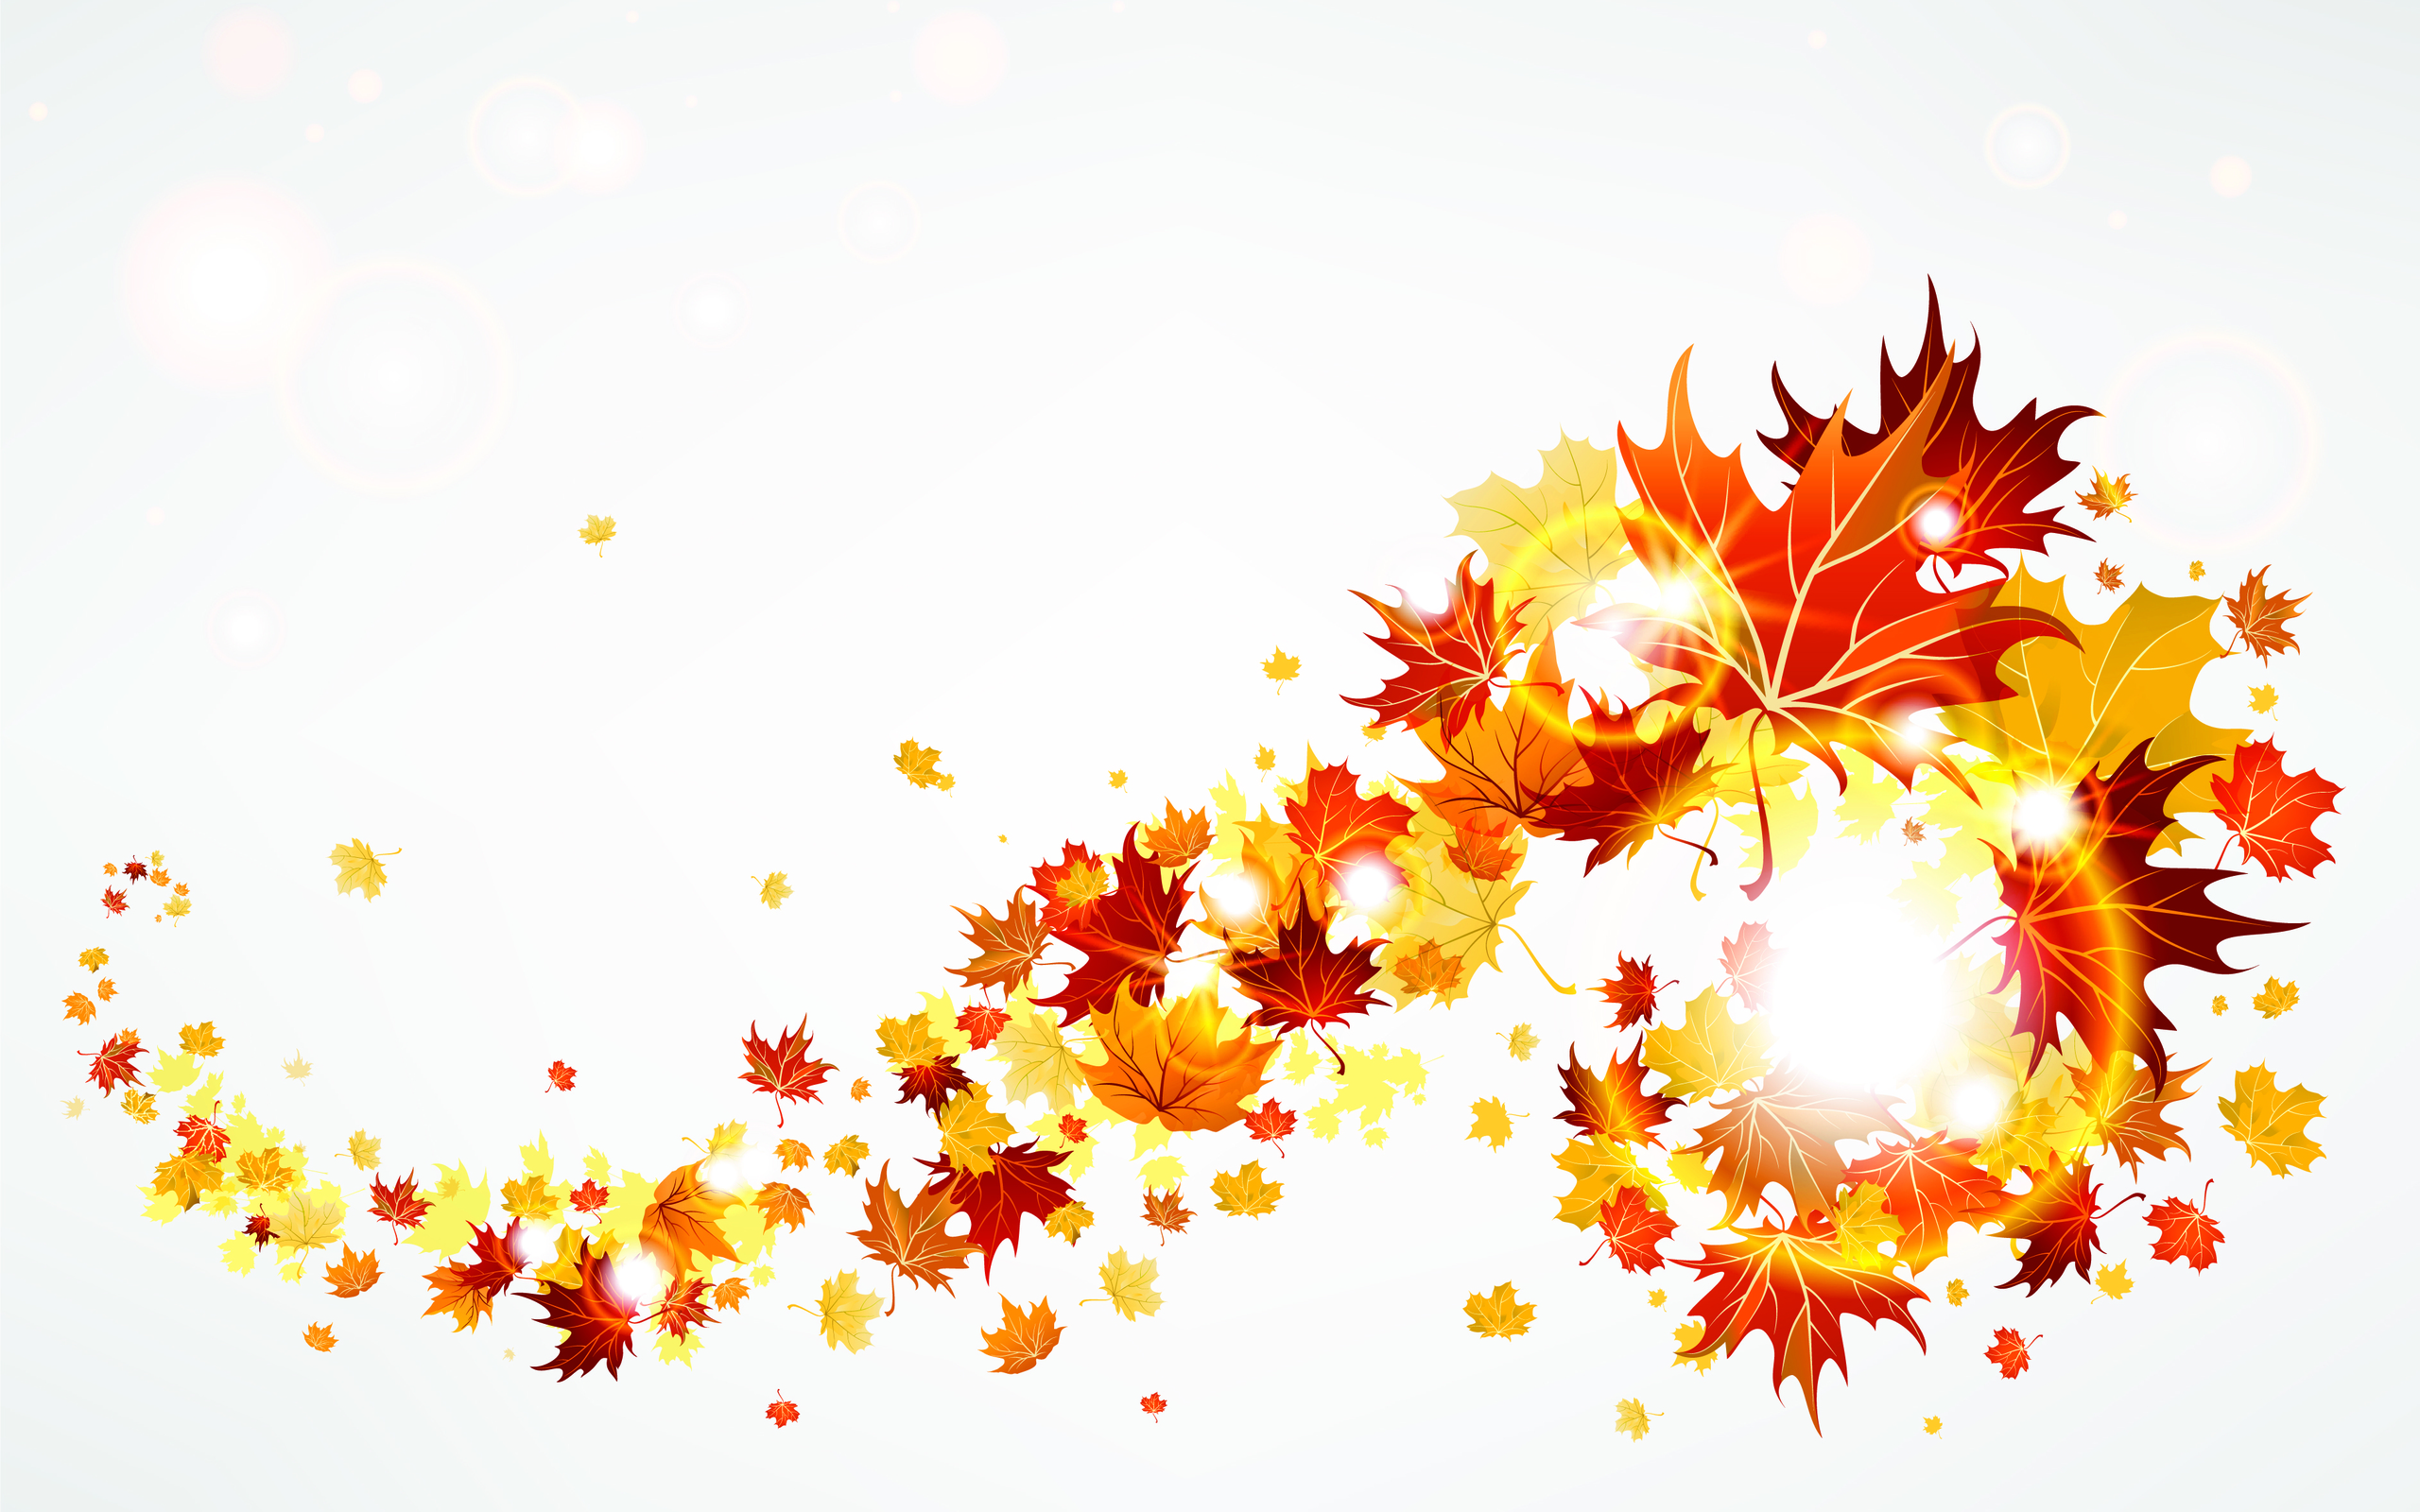 Autumn Leaves Abstract 2560x1600 5862 HD Wallpaper Res 2560x1600 2560x1600